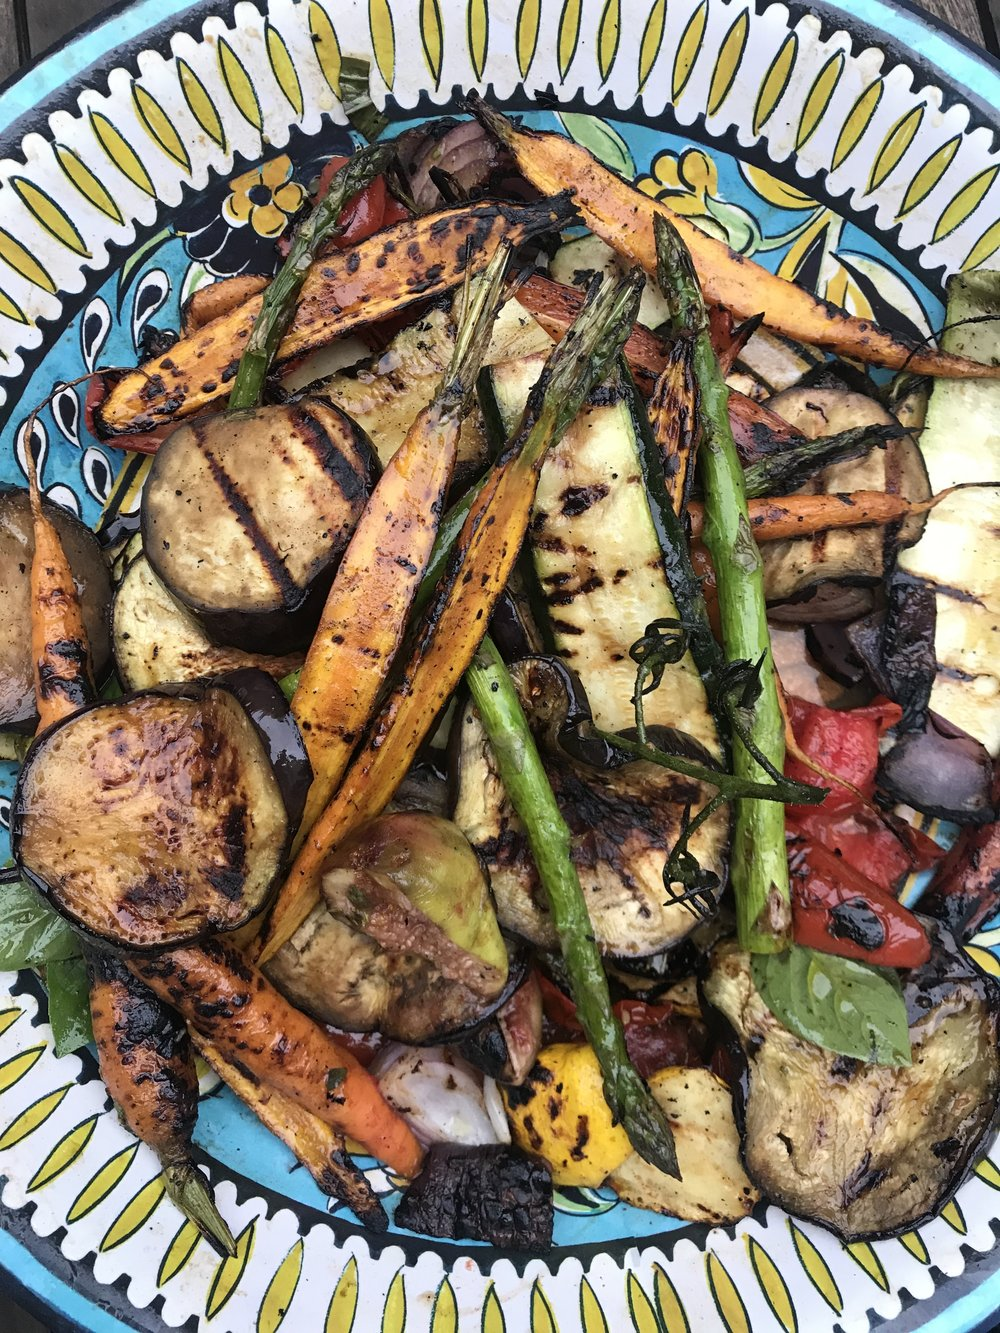 grilled veggies after.jpg